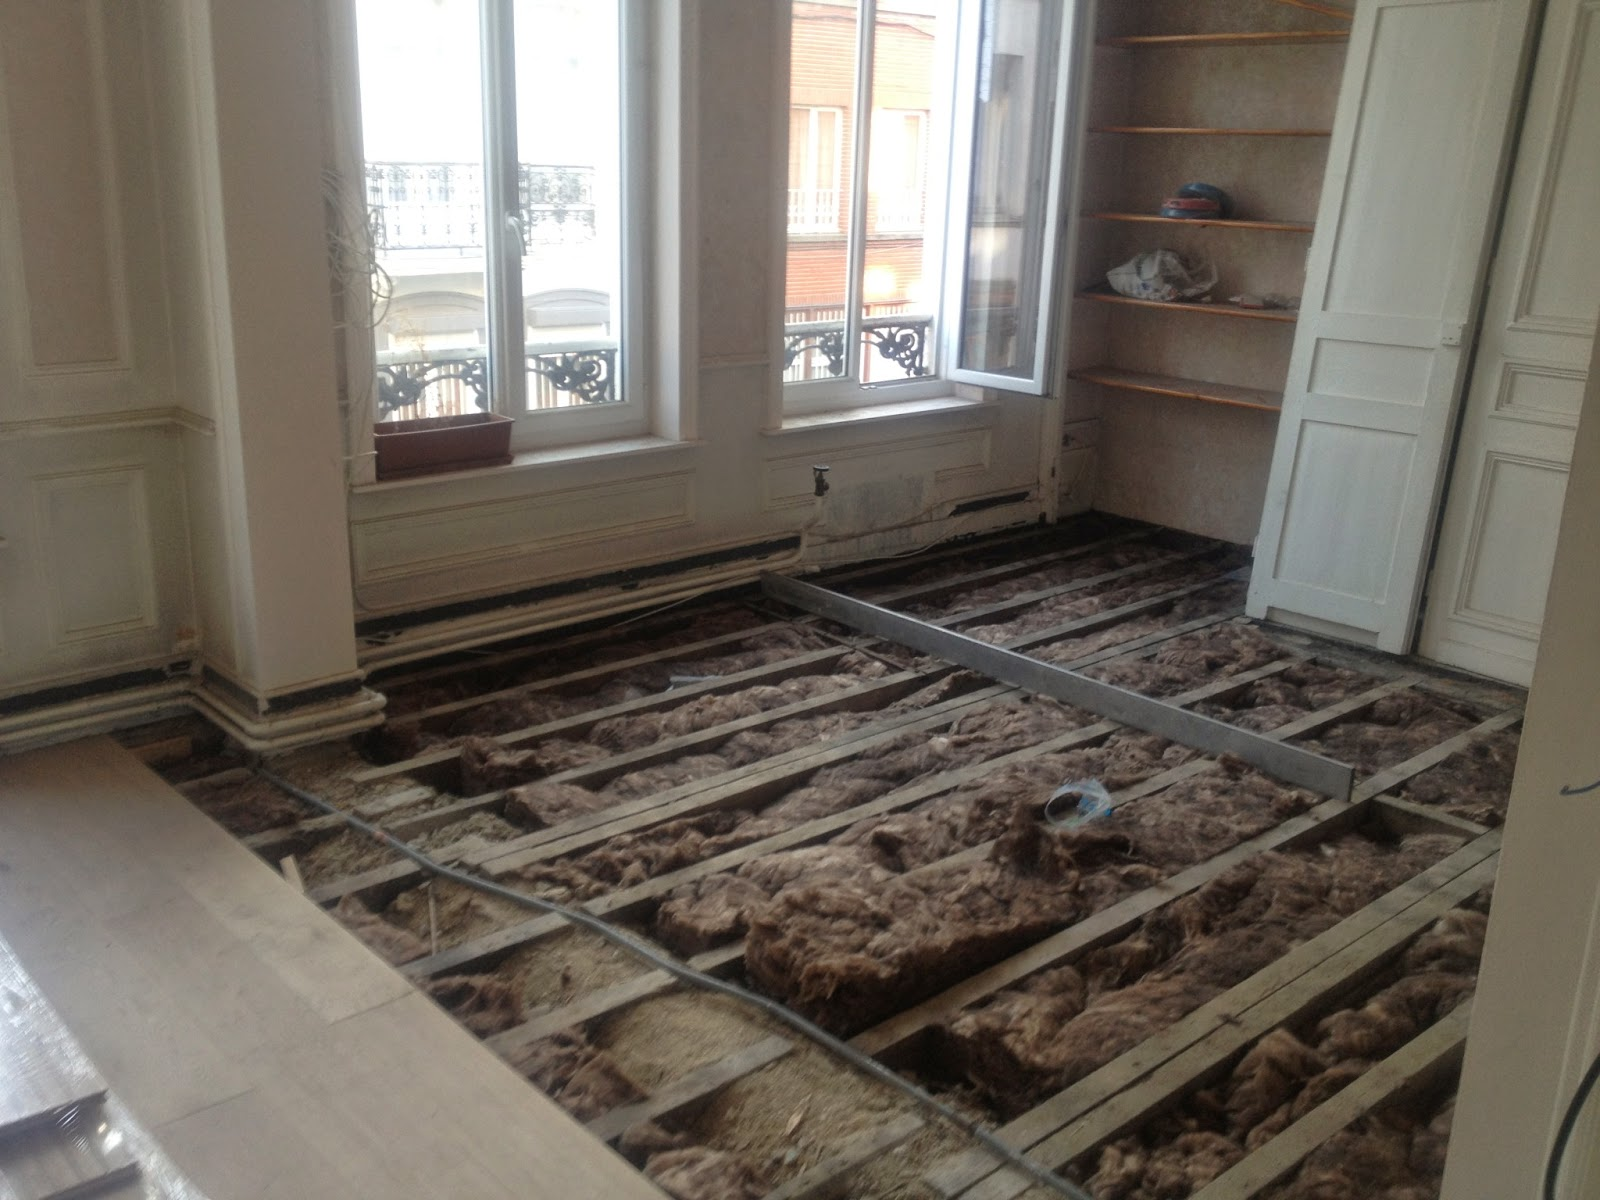 Jacques lenain architecte lille r novation d 39 une ancienne for Parquet renovation